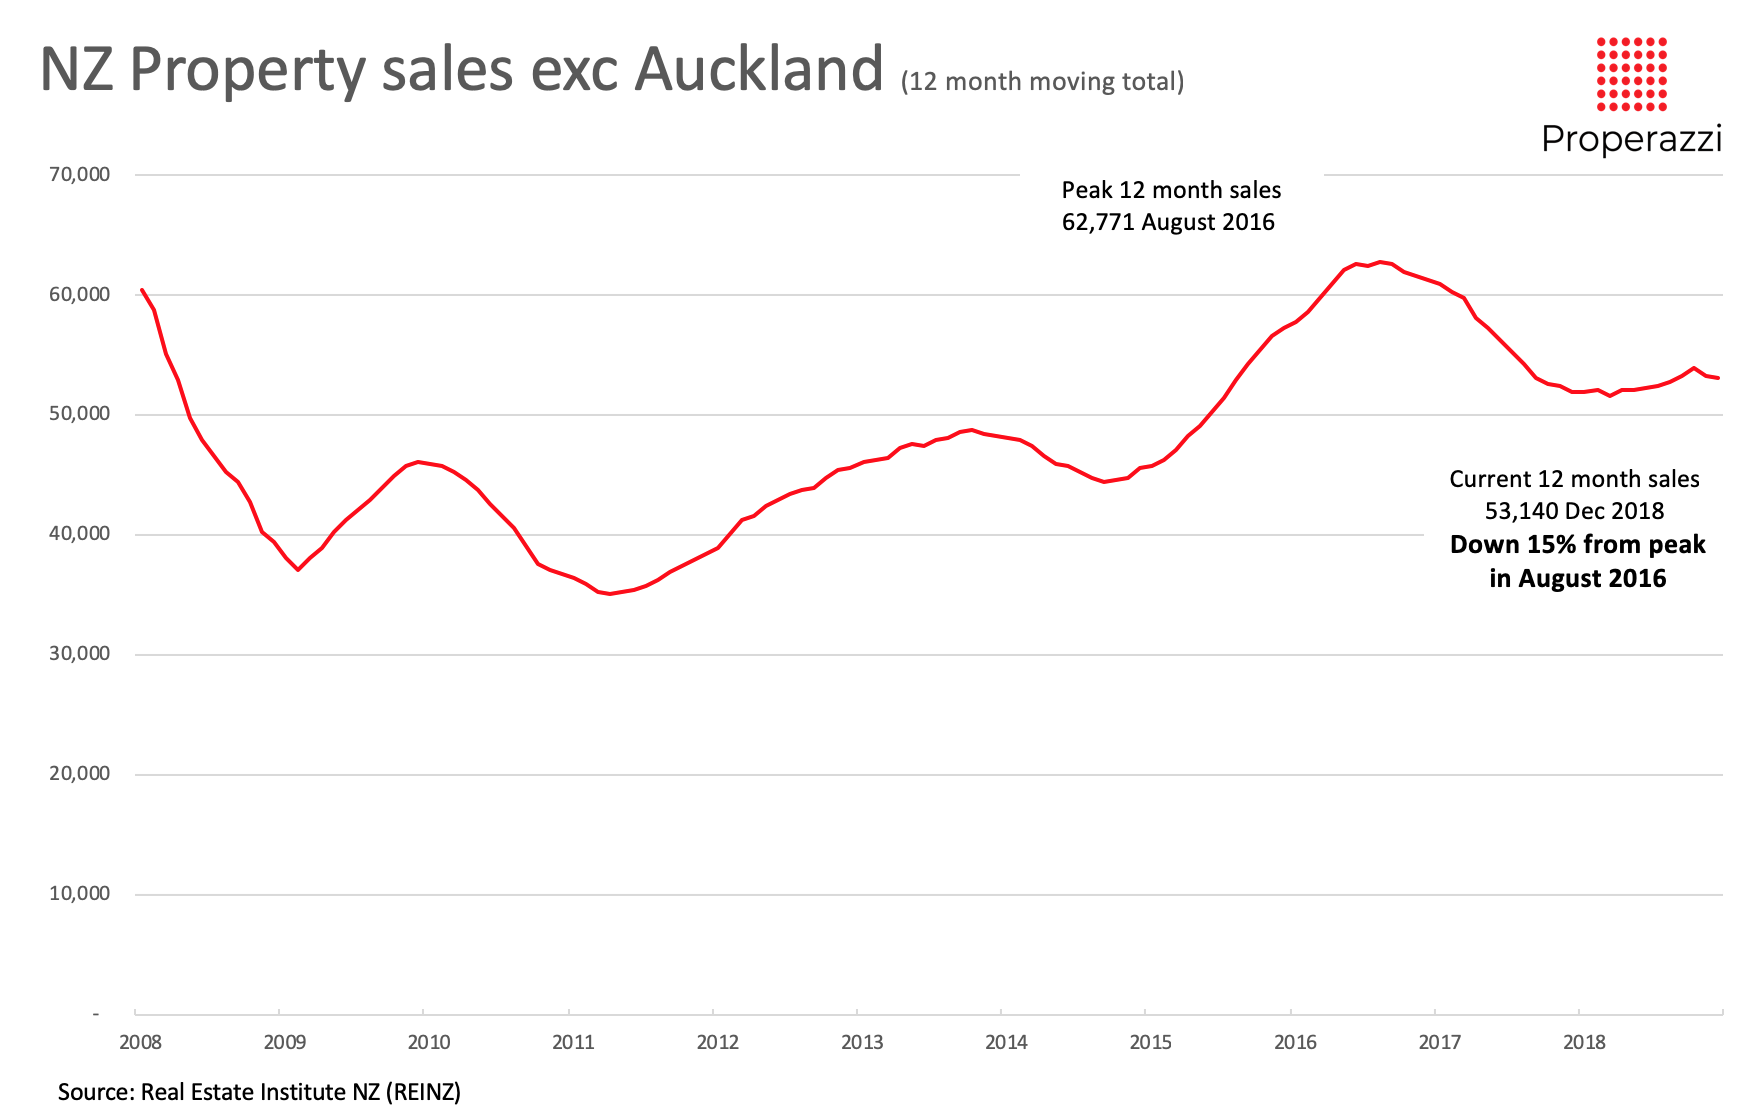 NZ property sales exc Auckland 2008 to 2018